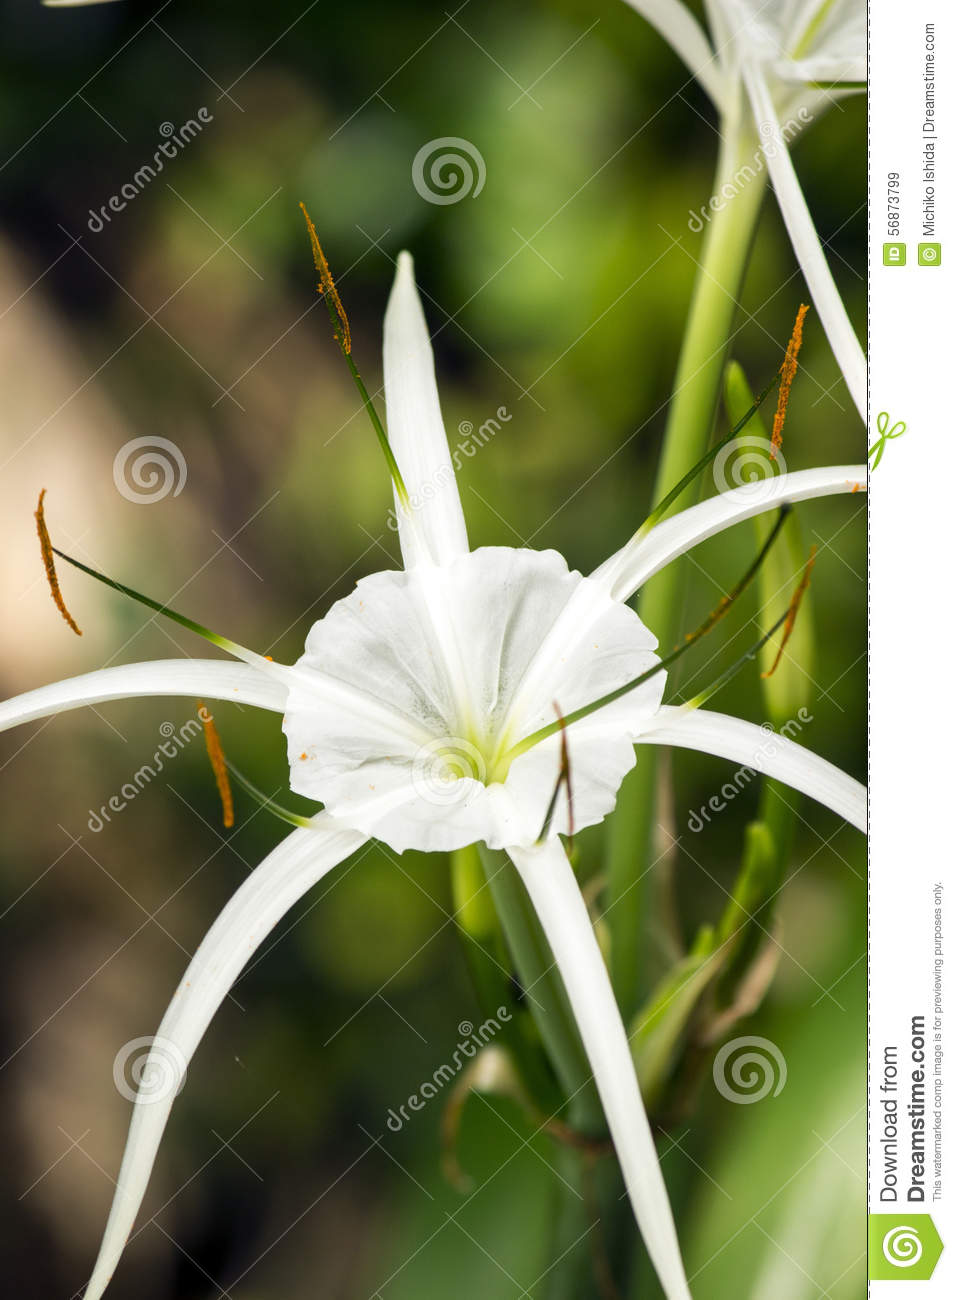 White lily like flower spider lily stock image image of green white lily like flower spider lily green skinny royalty free stock photo download white lily like flower izmirmasajfo Image collections